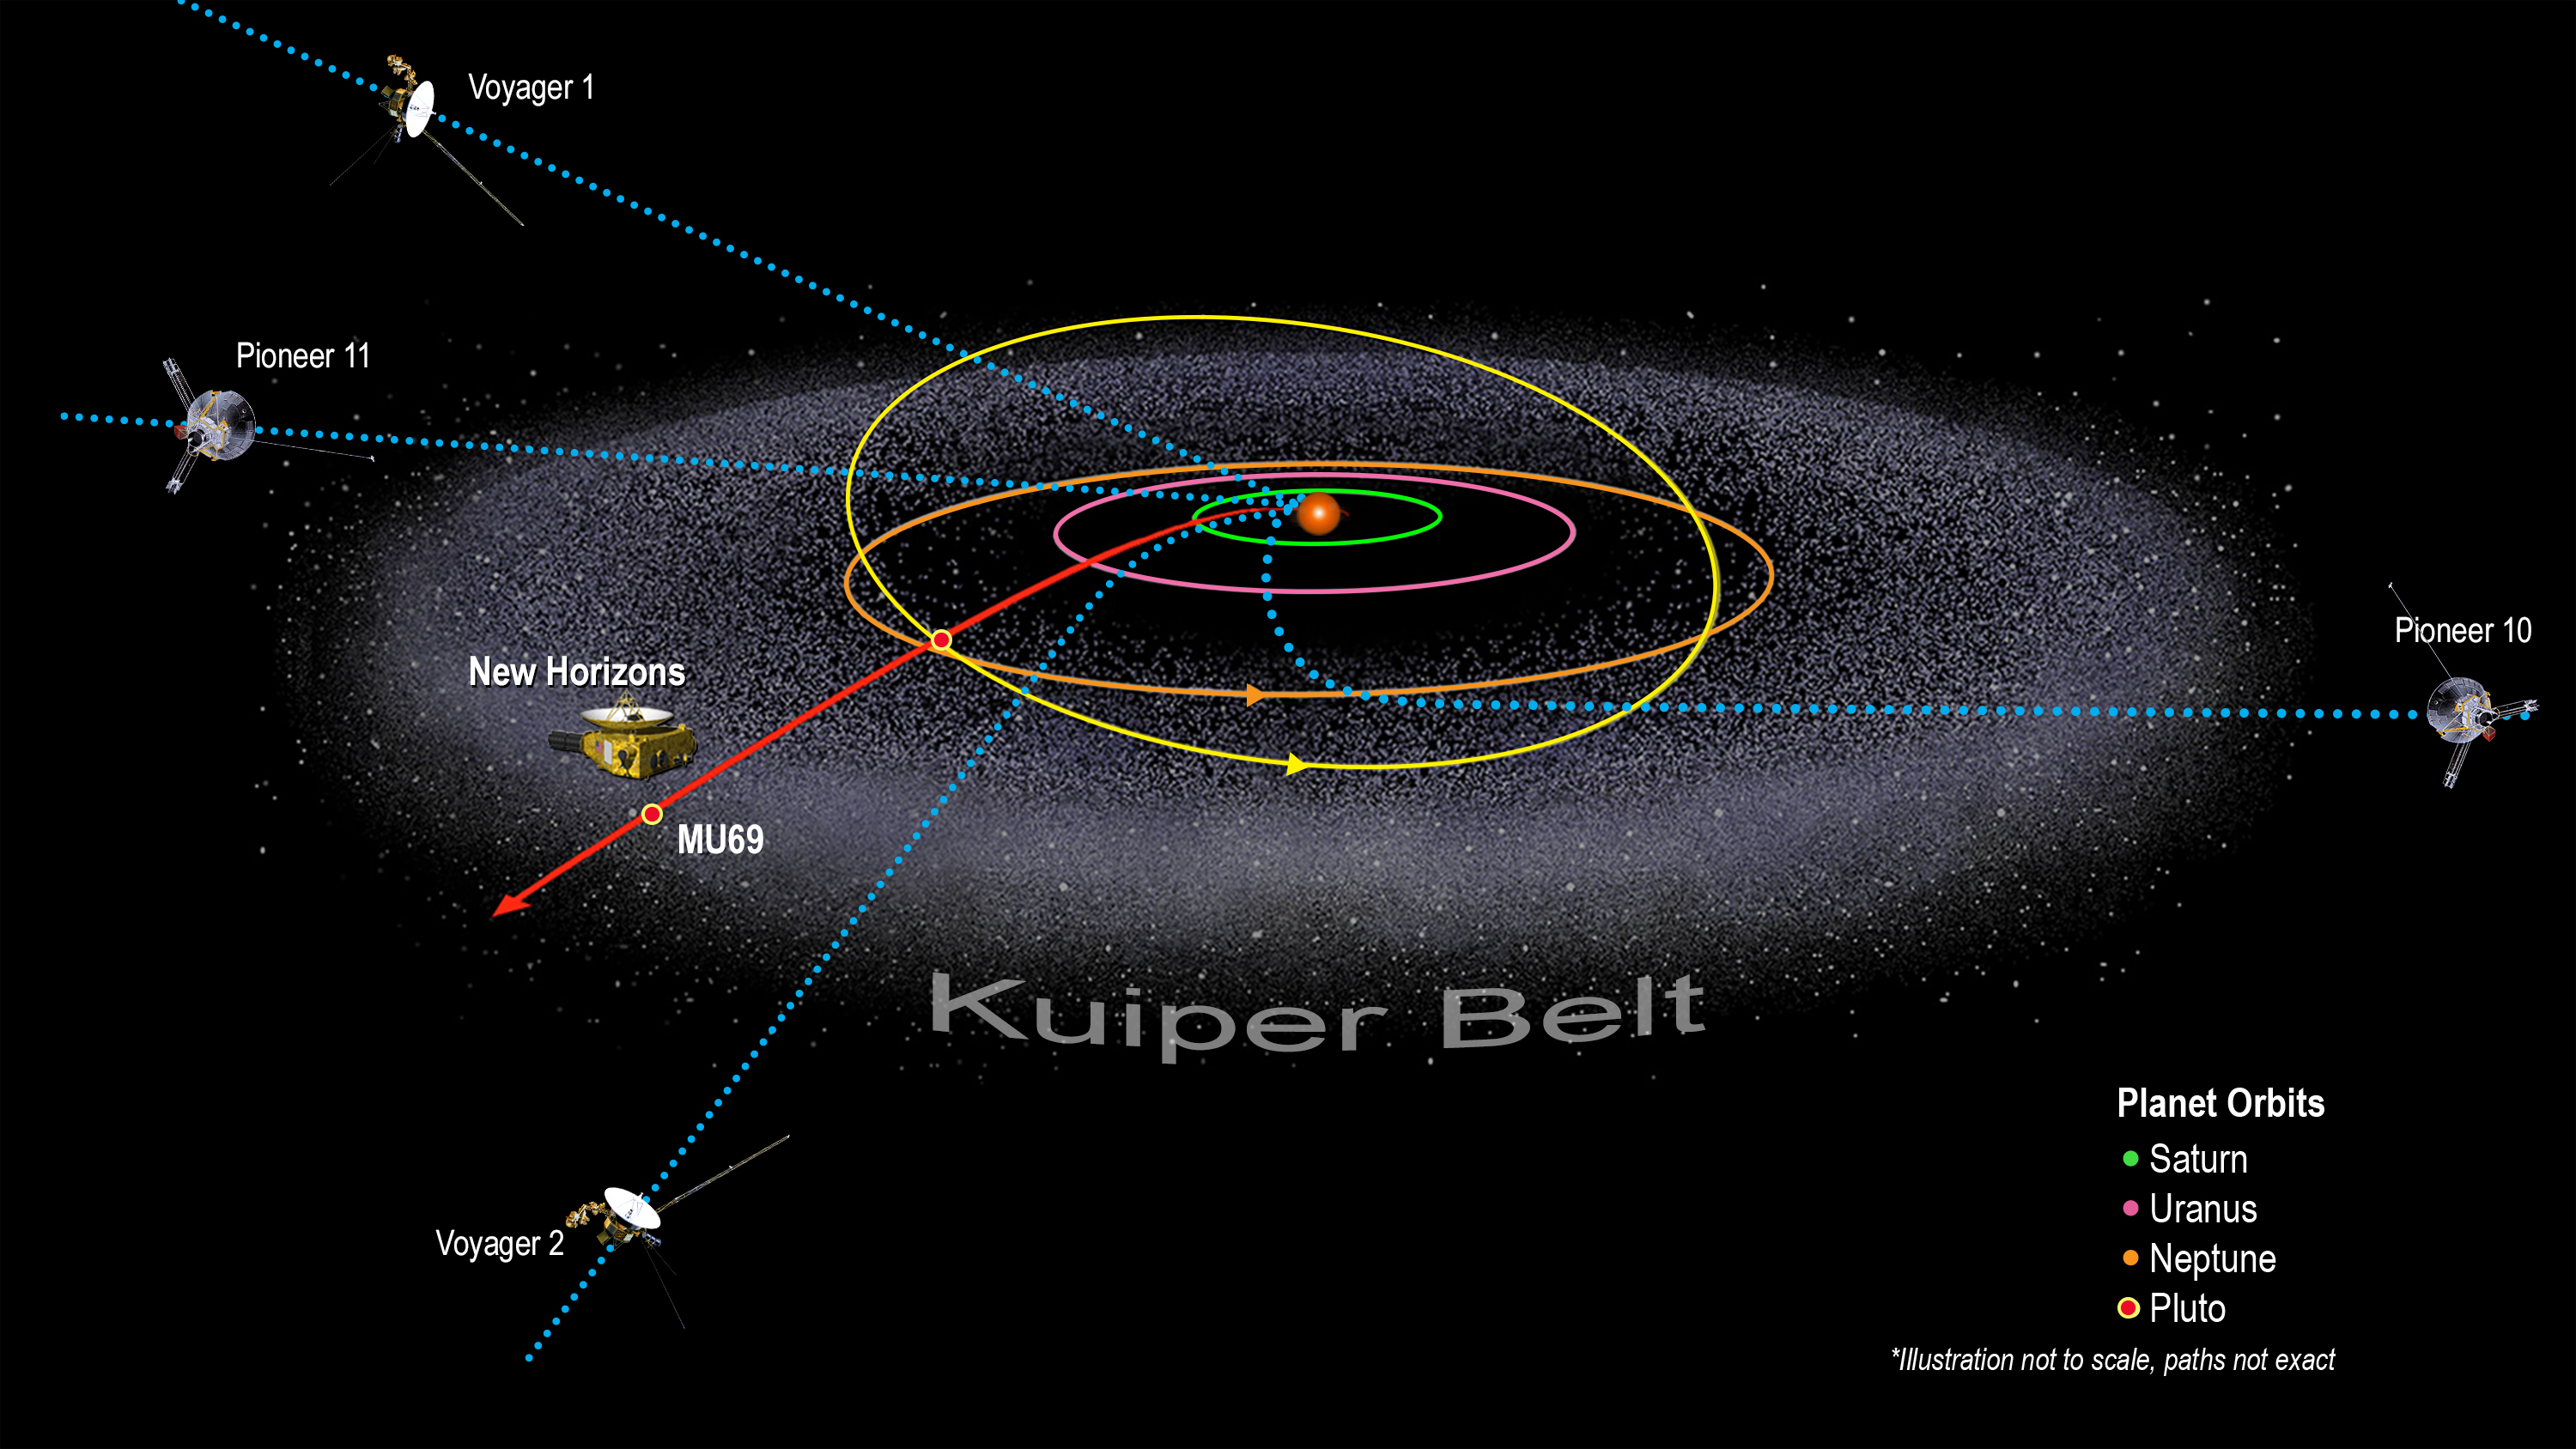 Overview Kuiper Belt Solar System Exploration Nasa Science Planet Inside Earth Diagram Page 3 Pics About Space Illustration Of And Spacecraft Locations